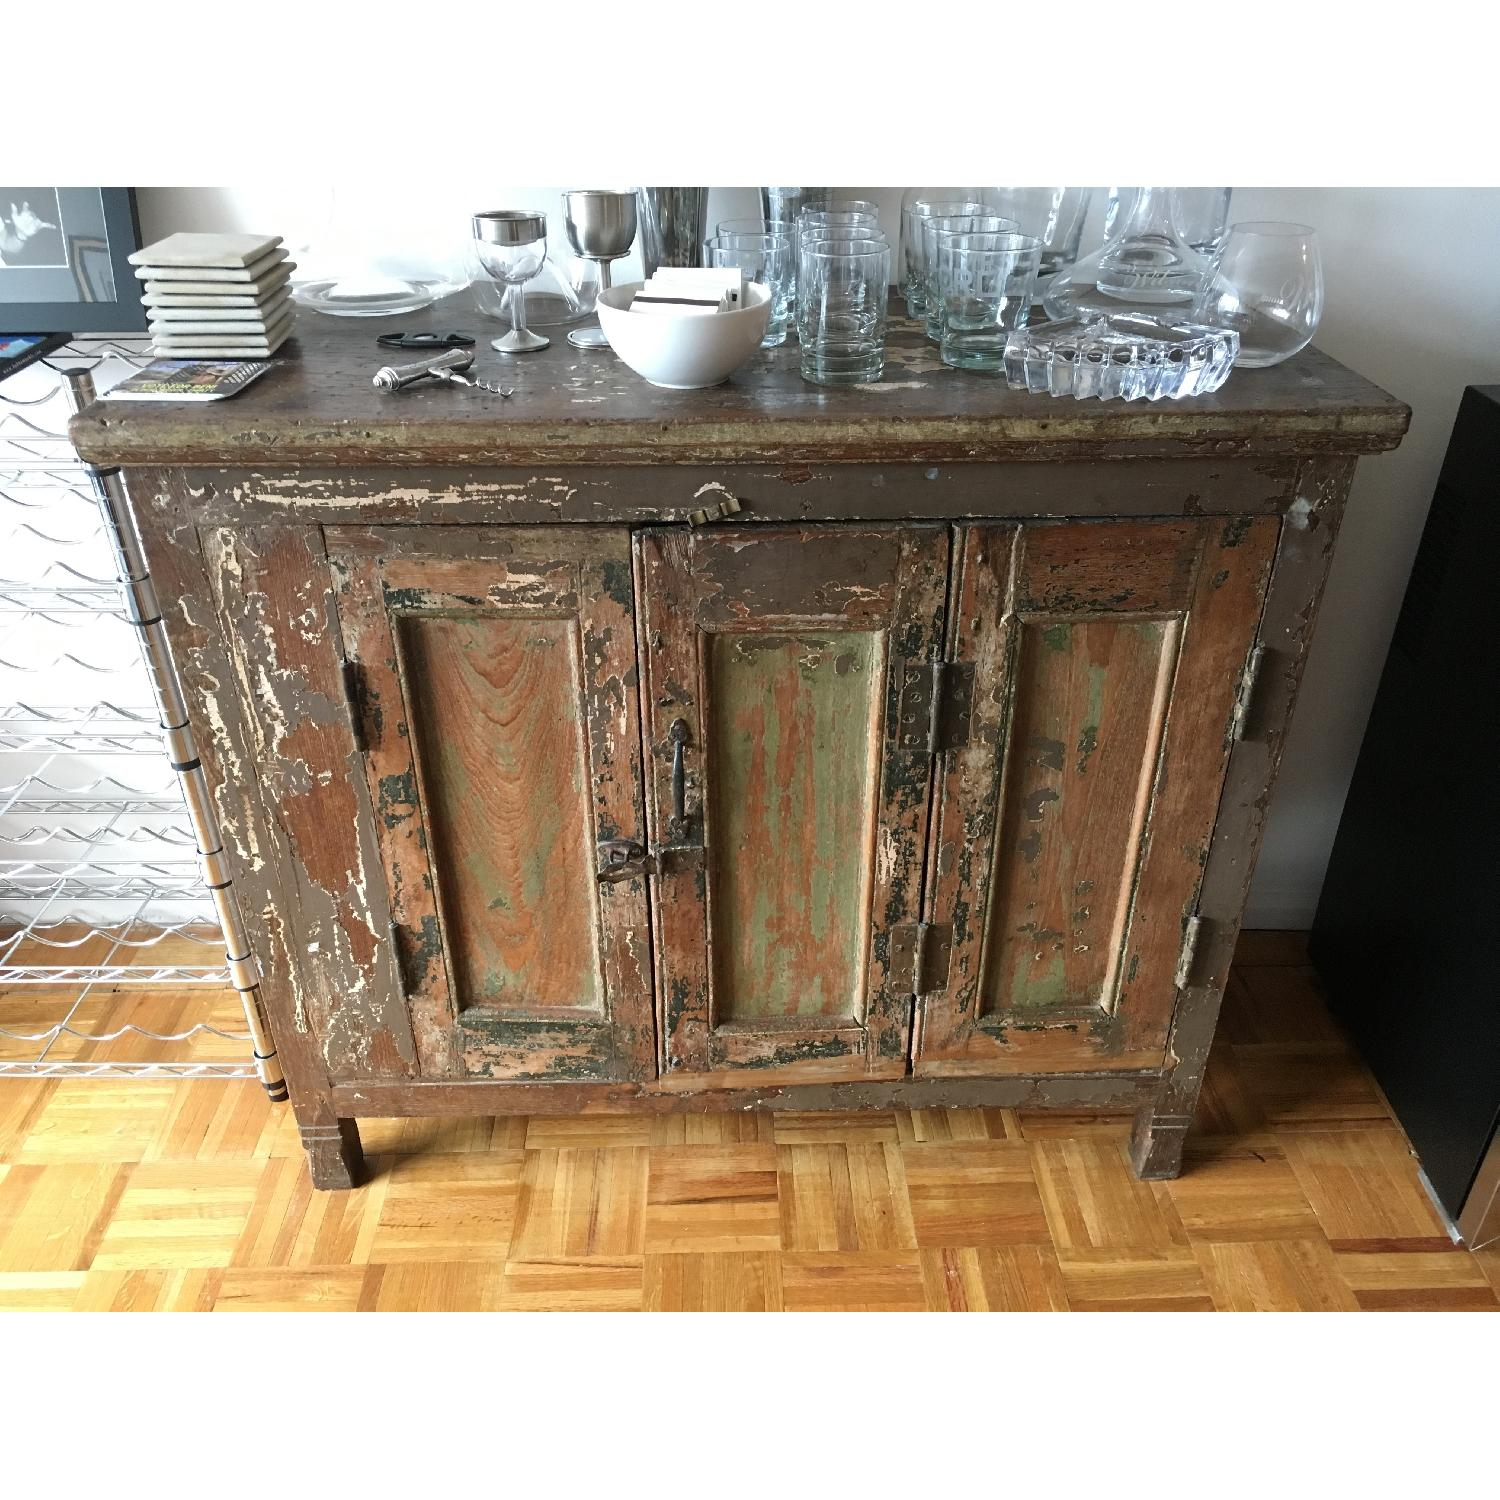 Antique 1920's Wooden Bar/Credenza from India - image-1